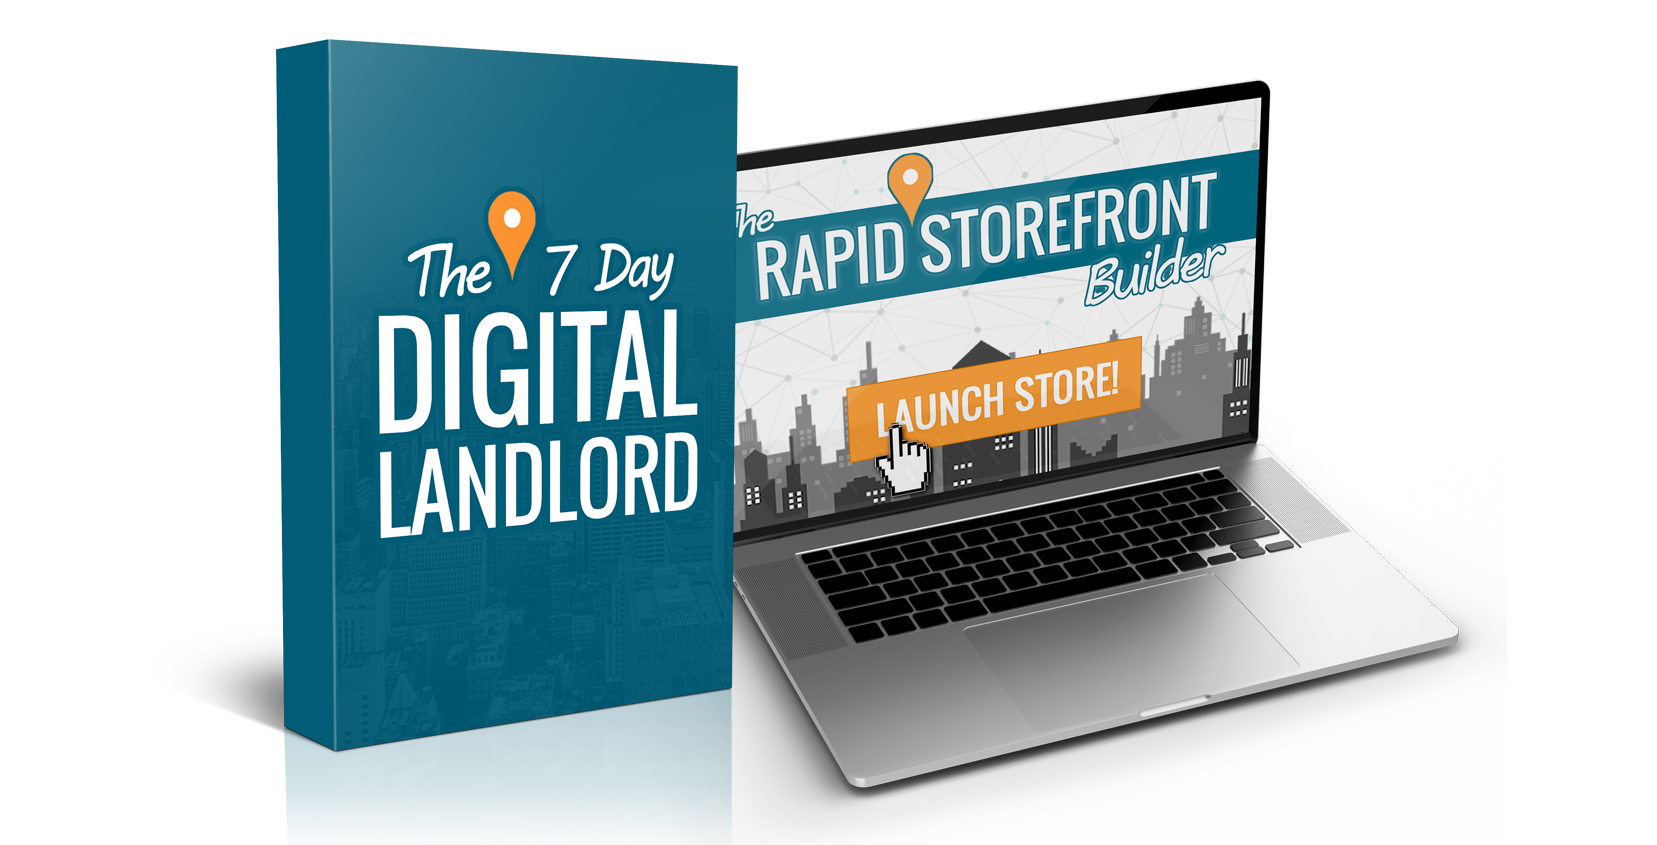 The 7 Day Digital Landlord review